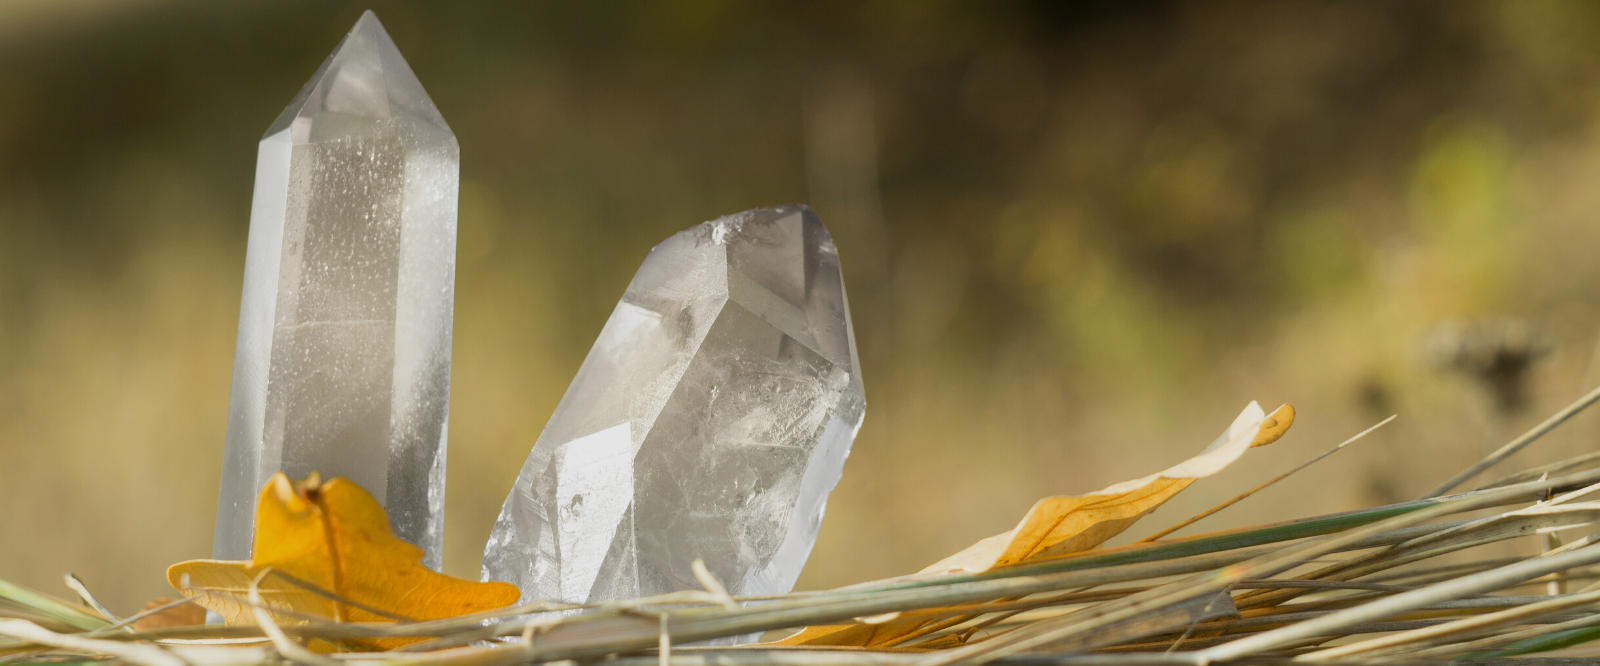 quartz crystals used in organic aromatherapy sprays